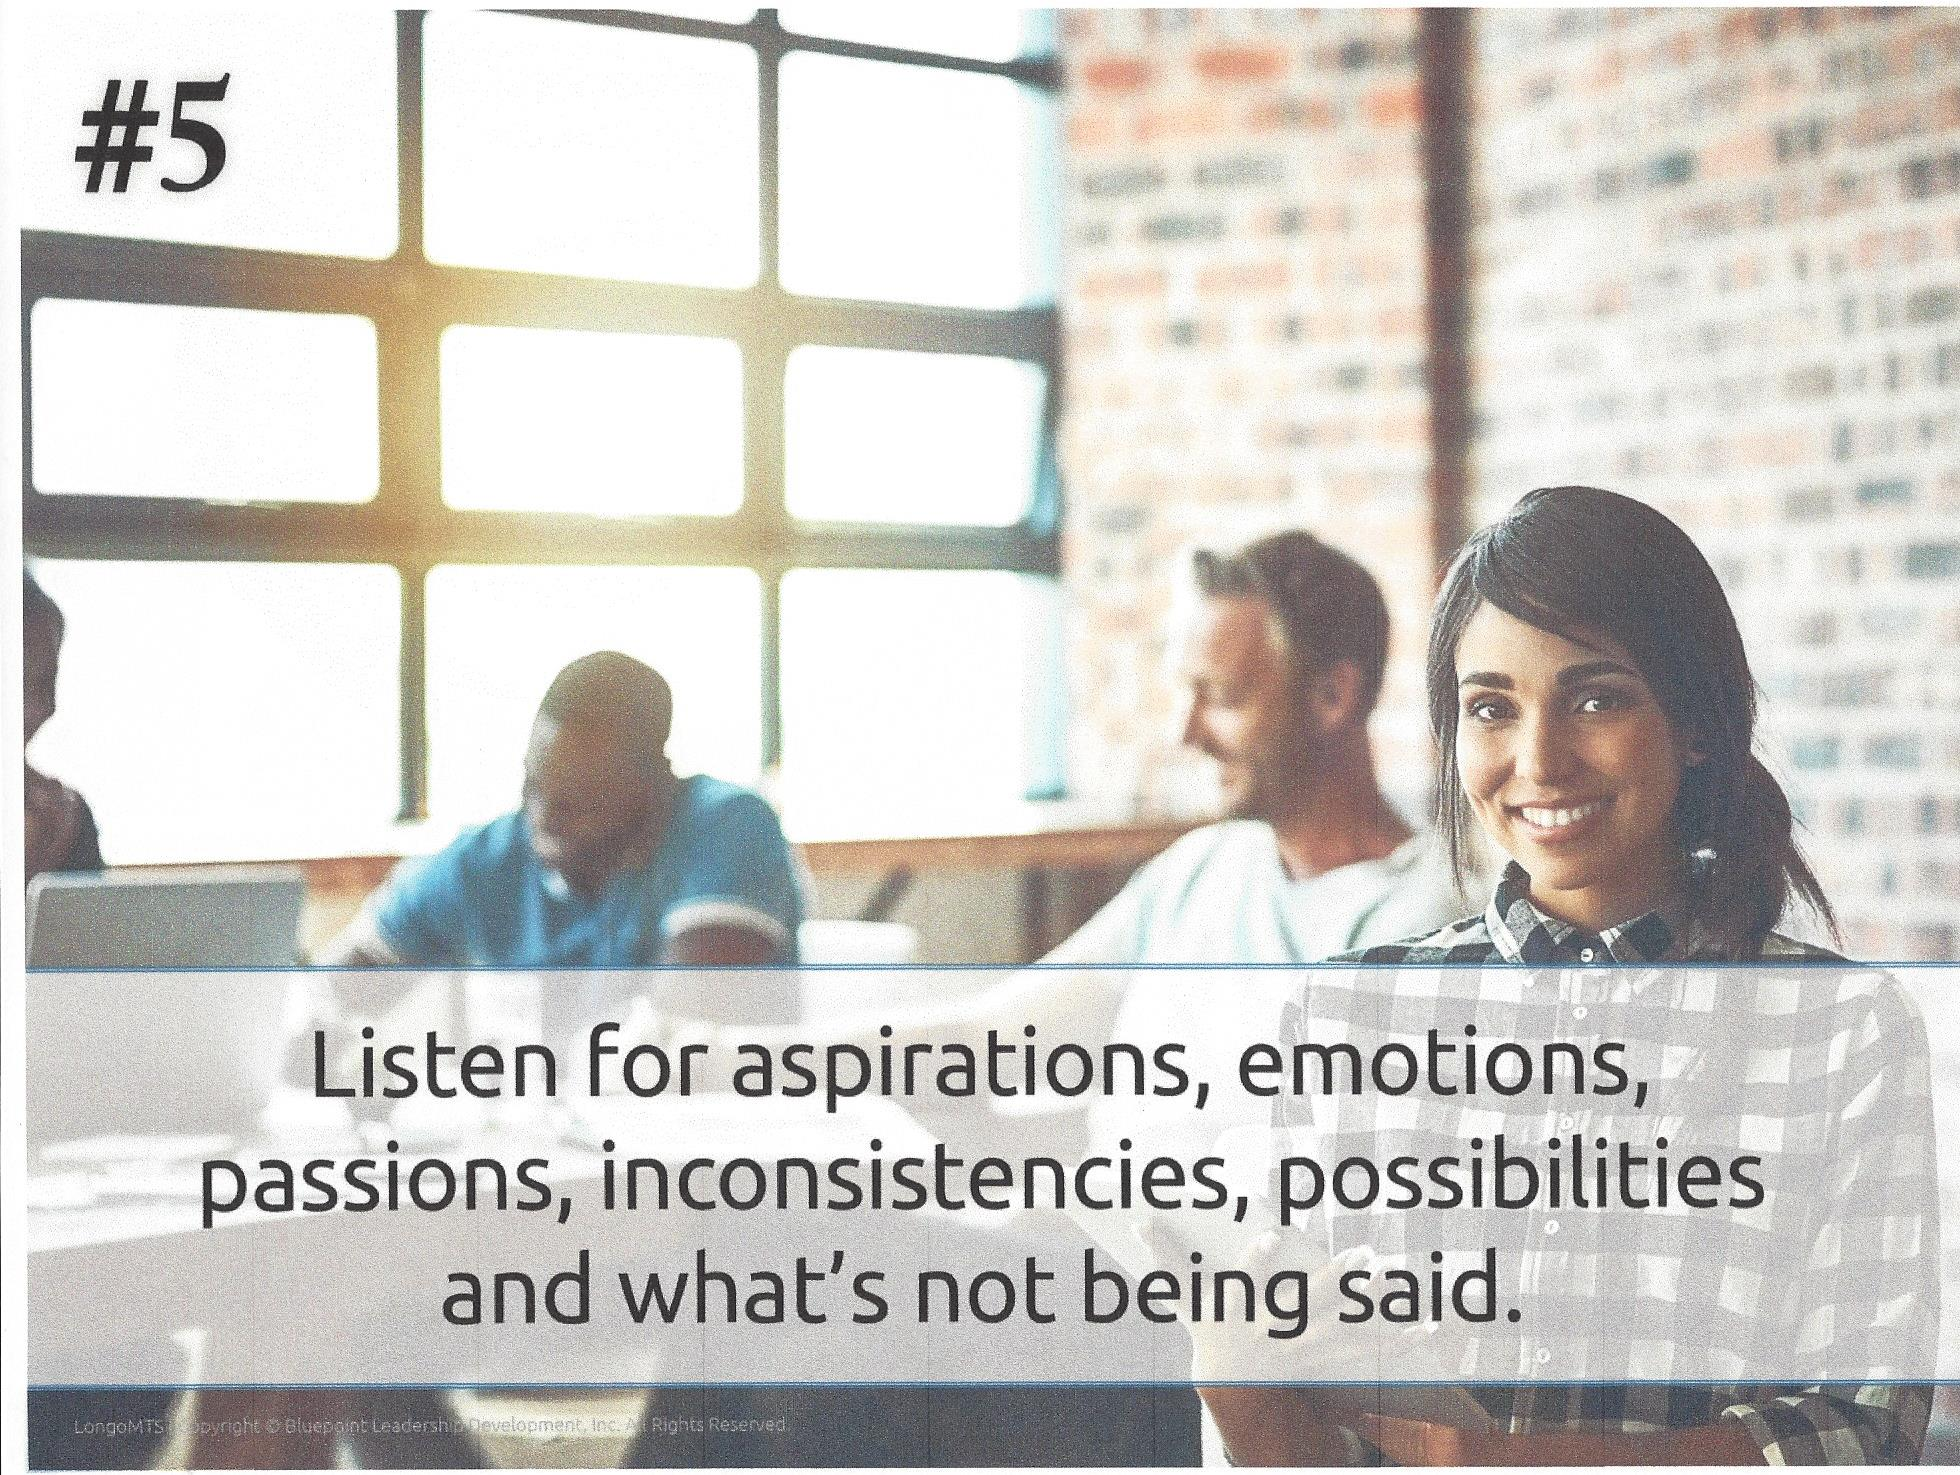 8 Characteristics Coach #5 Listen for- Greg Thomps.jpg